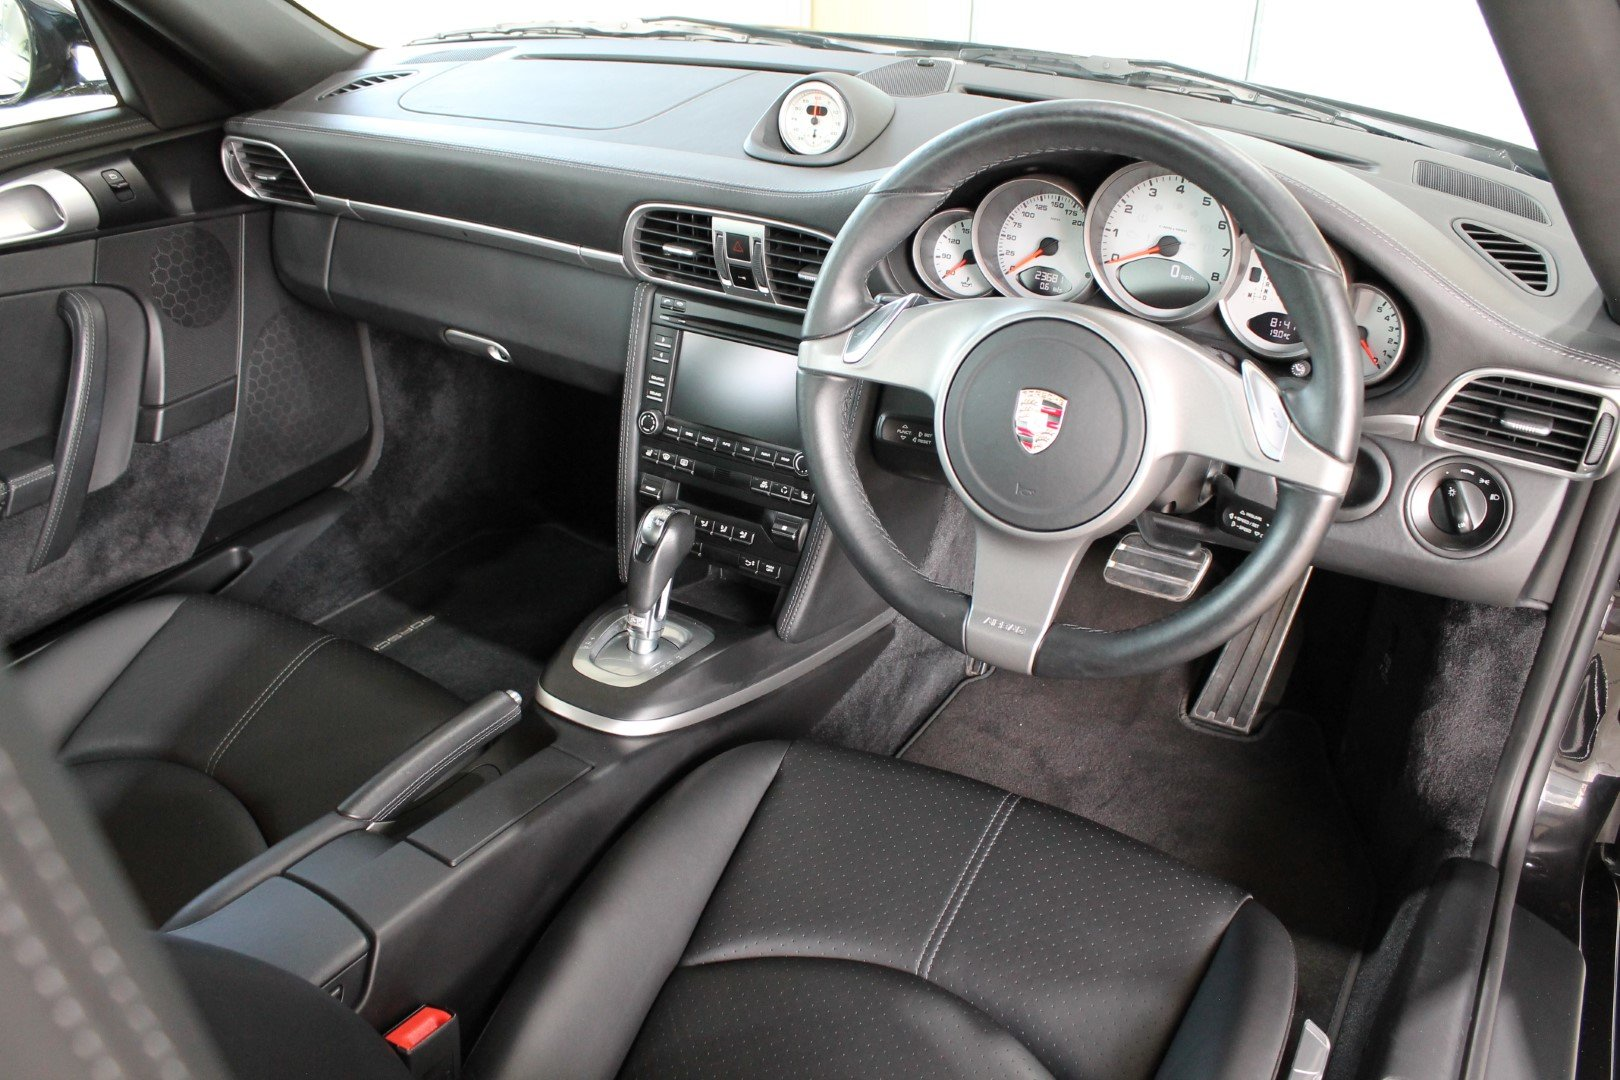 2009 Porsche 911 (997) 3.8 C2S PDK Coupe For Sale (picture 5 of 6)